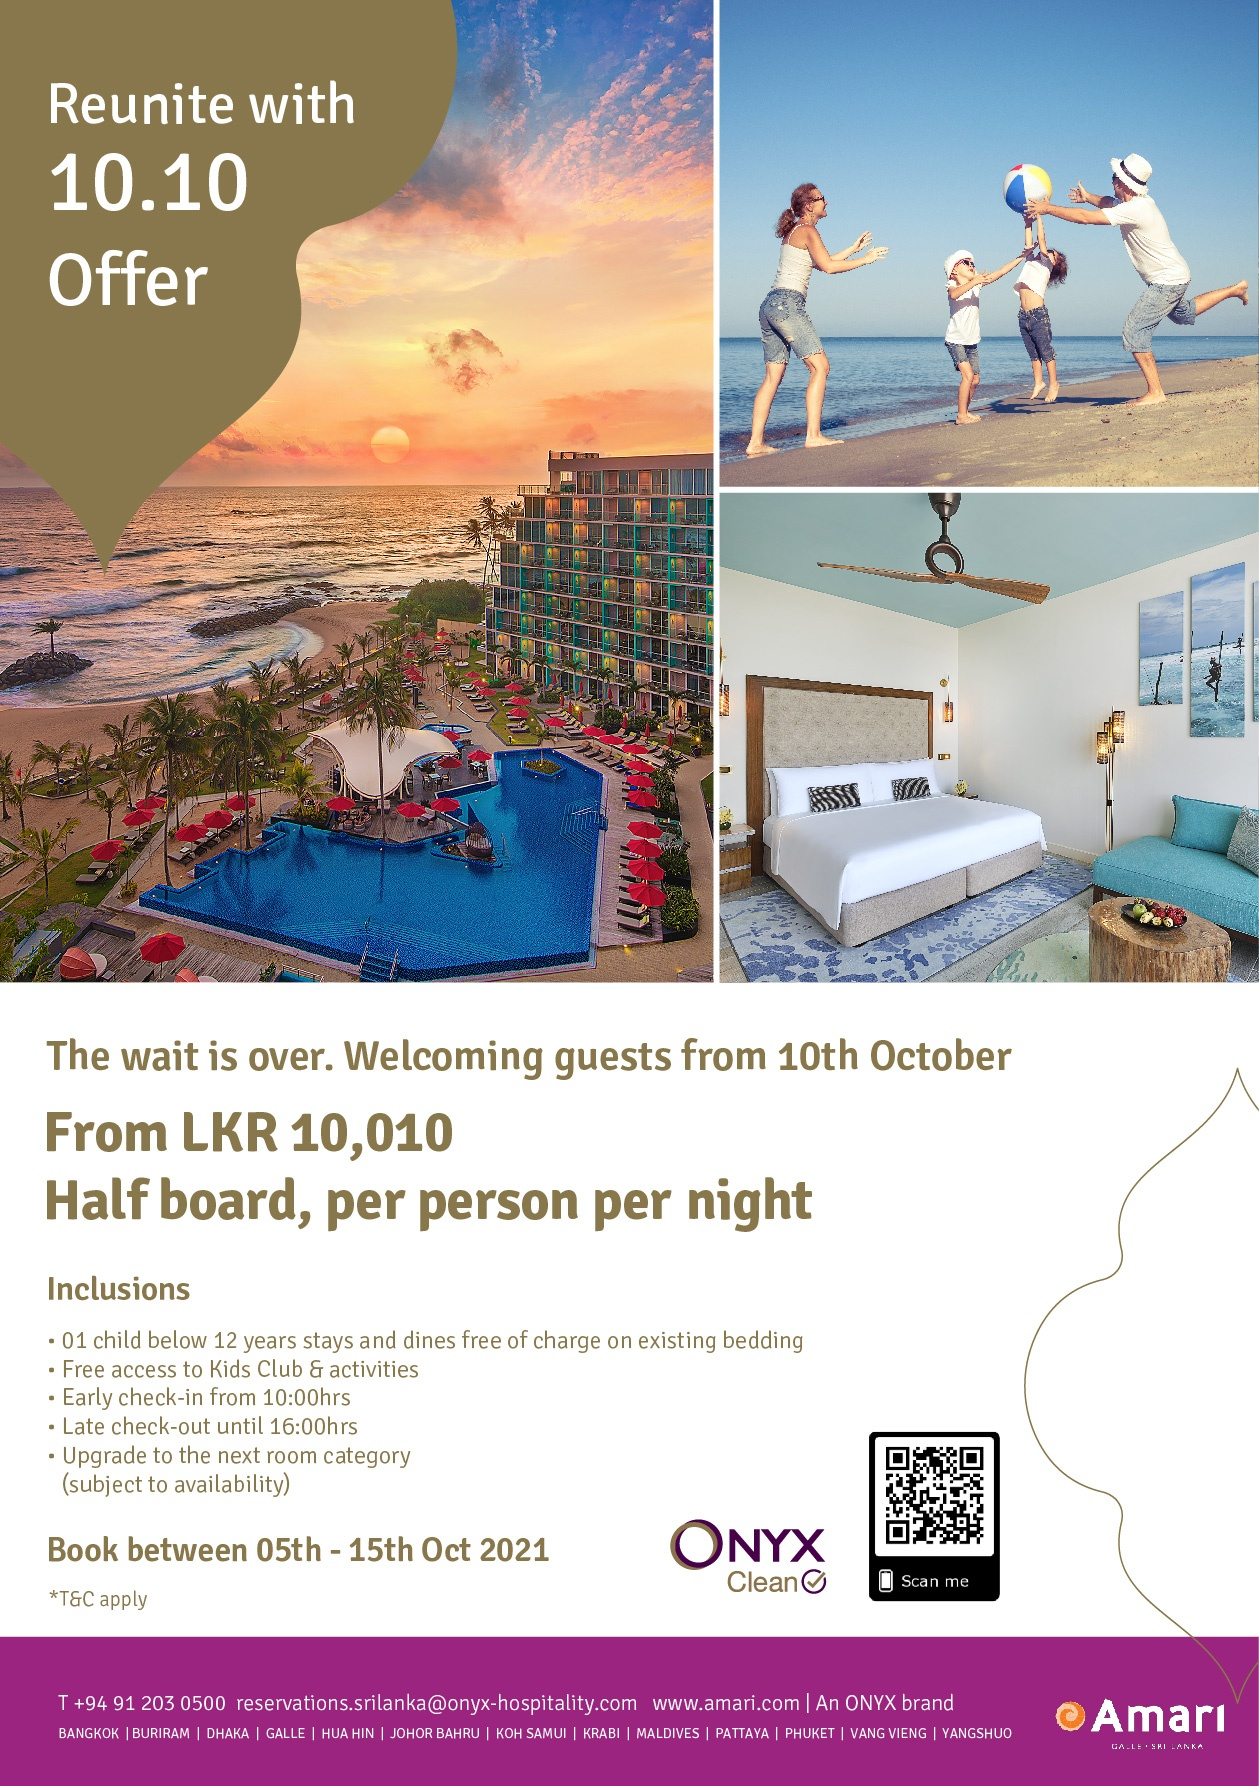 Last day to book - Reunite with 10.10 offer at Amari Galle